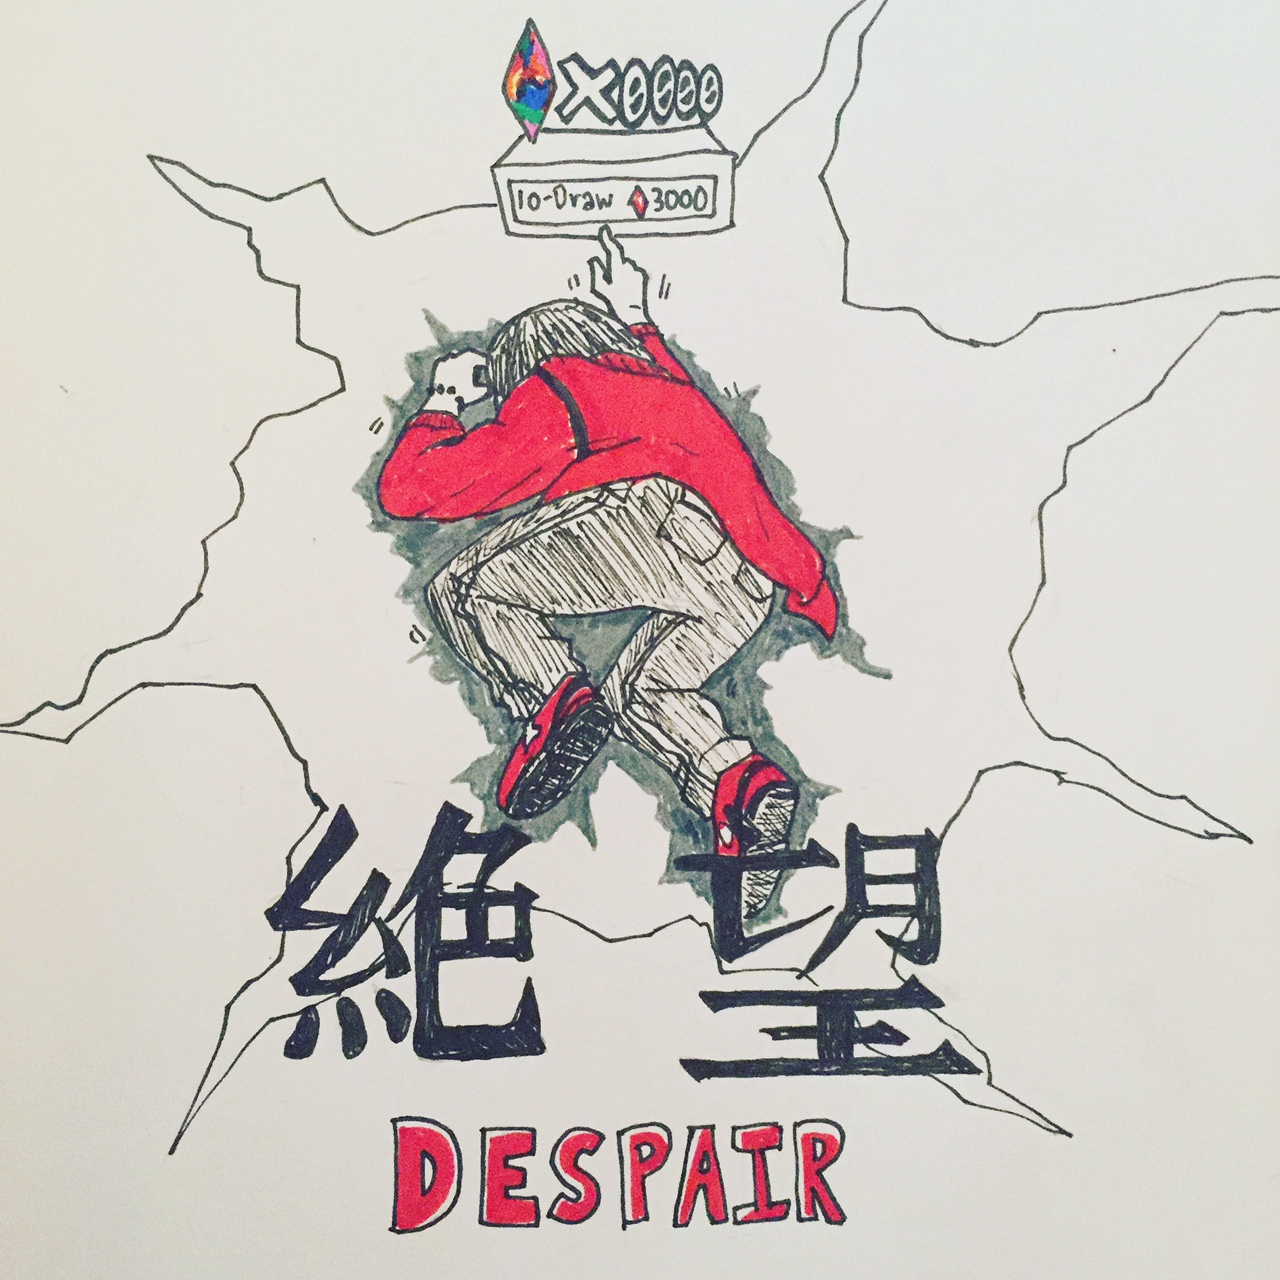 Inktober Day 24: Despair